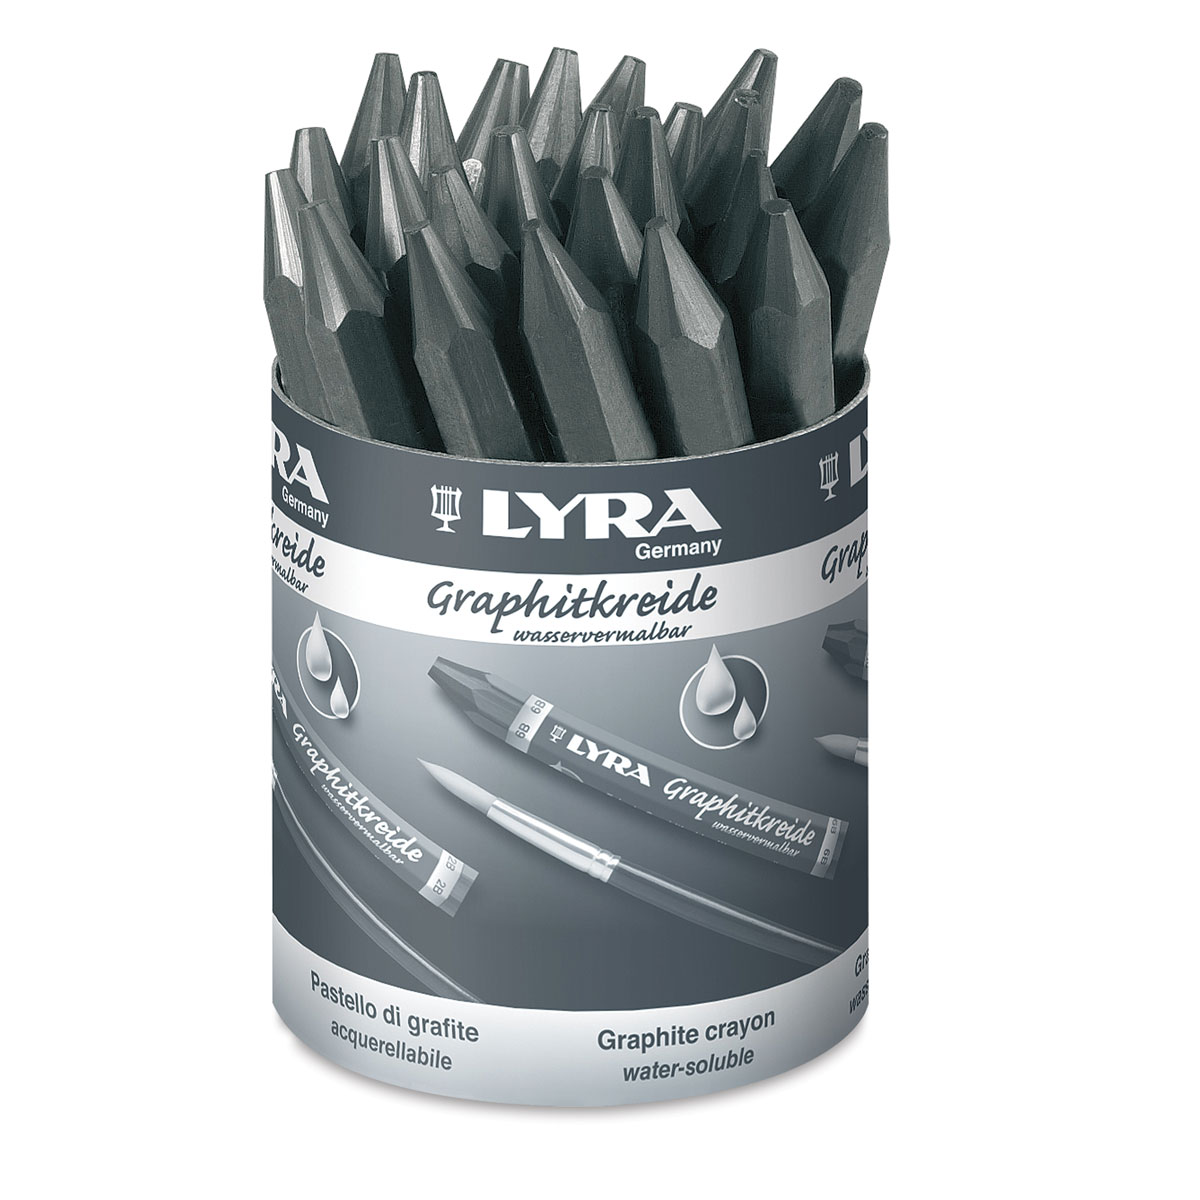 Lyra Graphite Crayons Water-Soluble